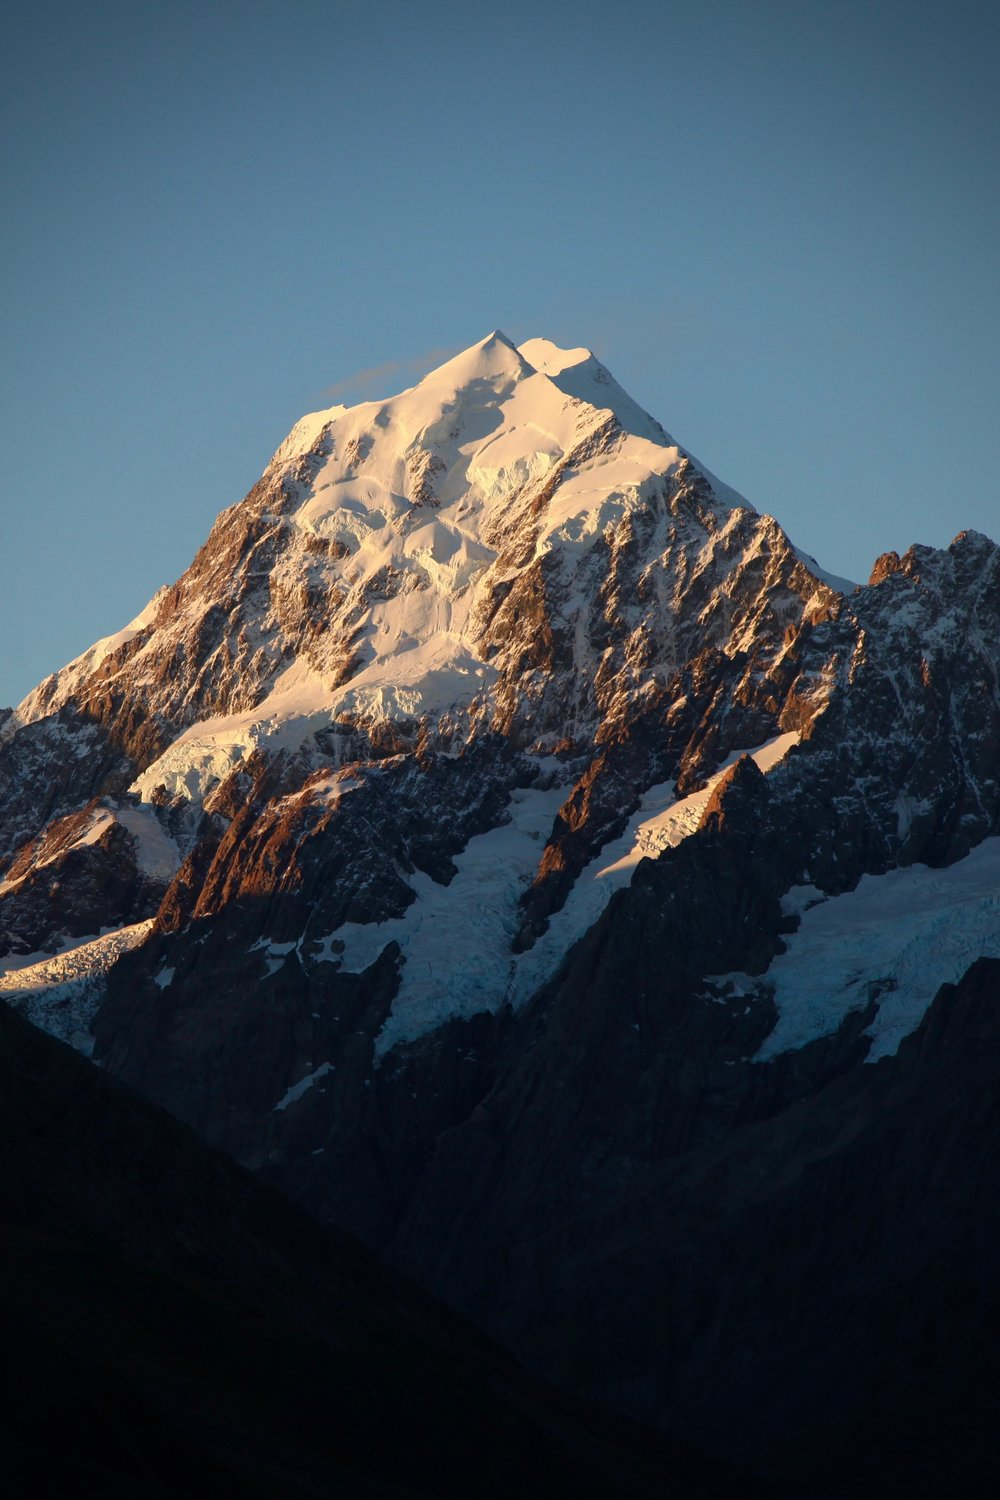 Aoraki Mt Cook National Park is located in the Southern Alps — at over 3700 metres, Aoraki Mount Cook is New Zealand's highest mountain.